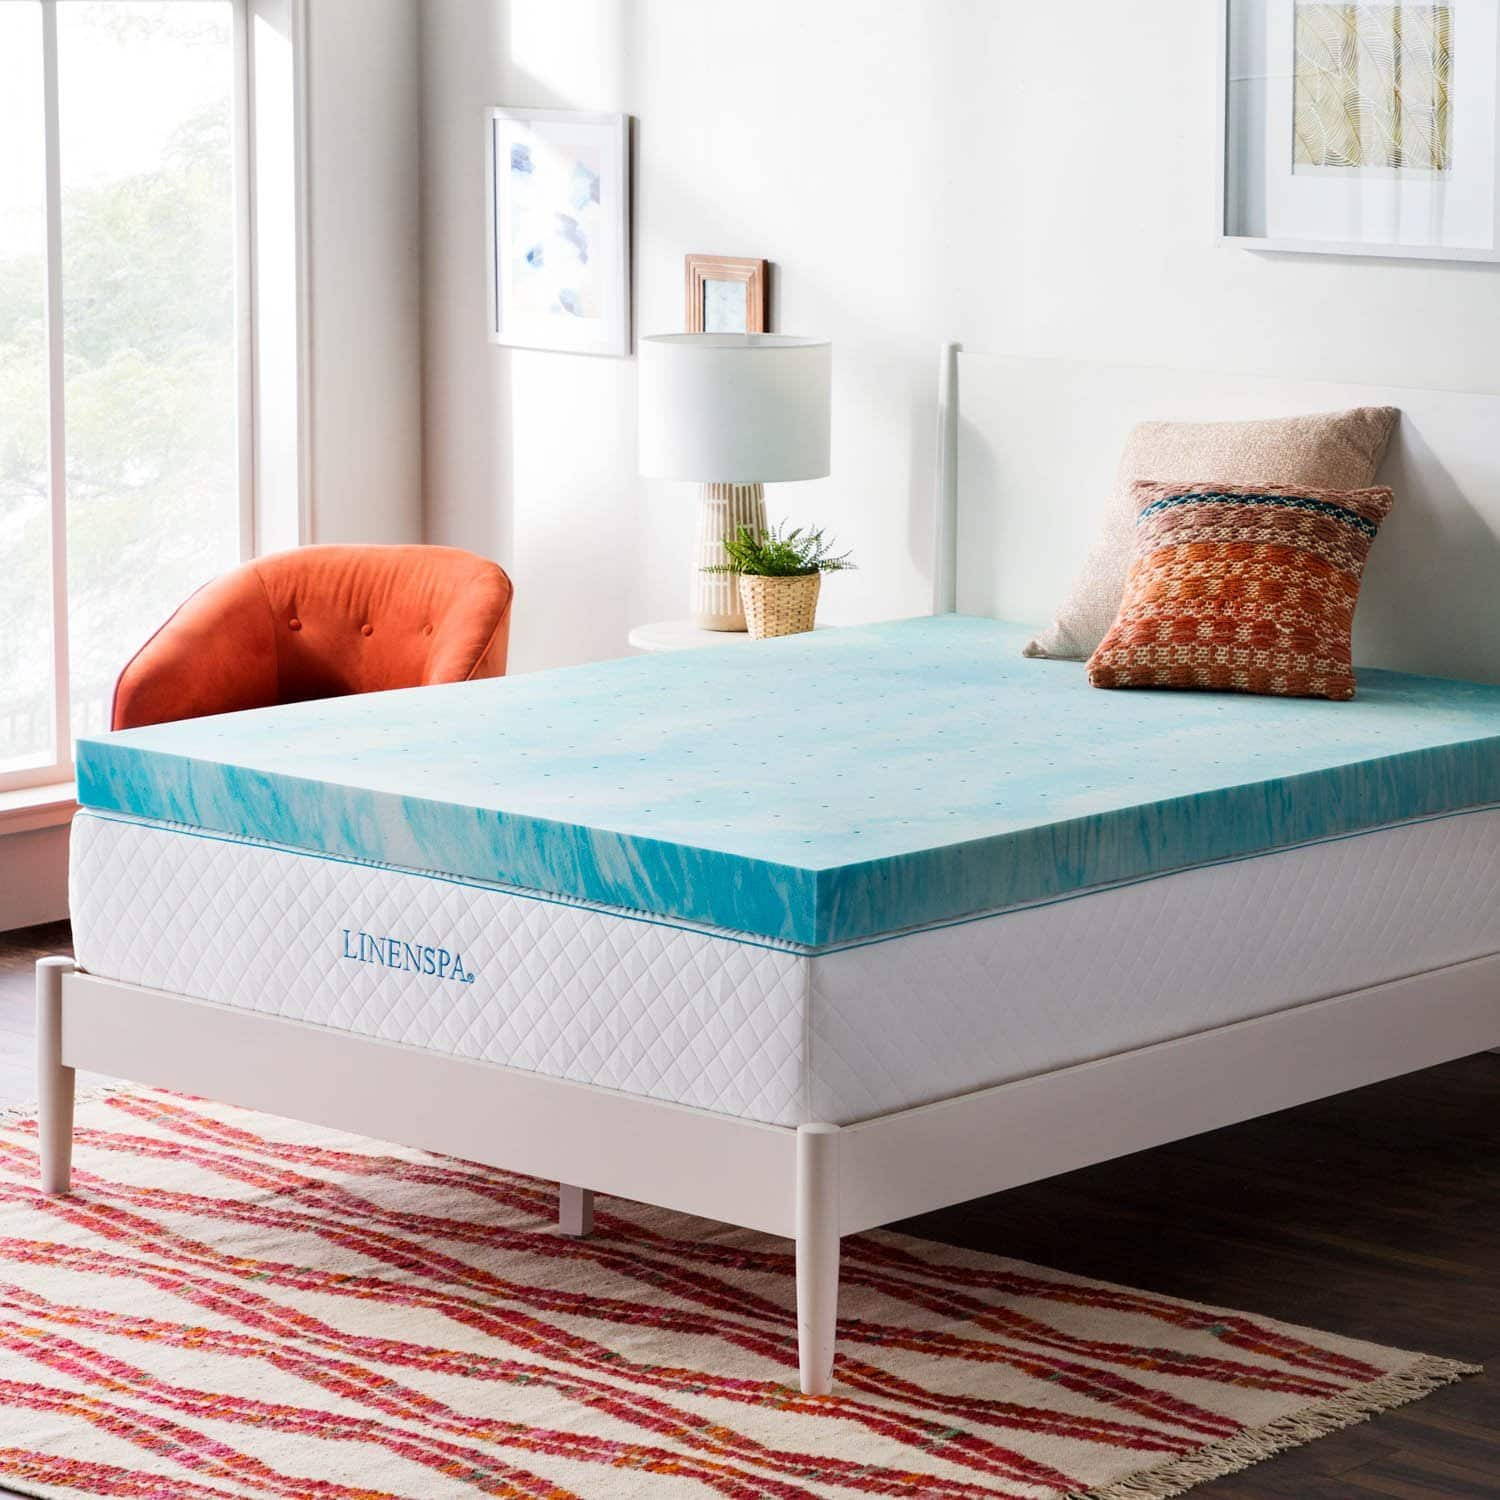 "Linenspa 2"" and 4"" Swirl Memory Foam Mattress Topper – 30% off starting at $45.99"